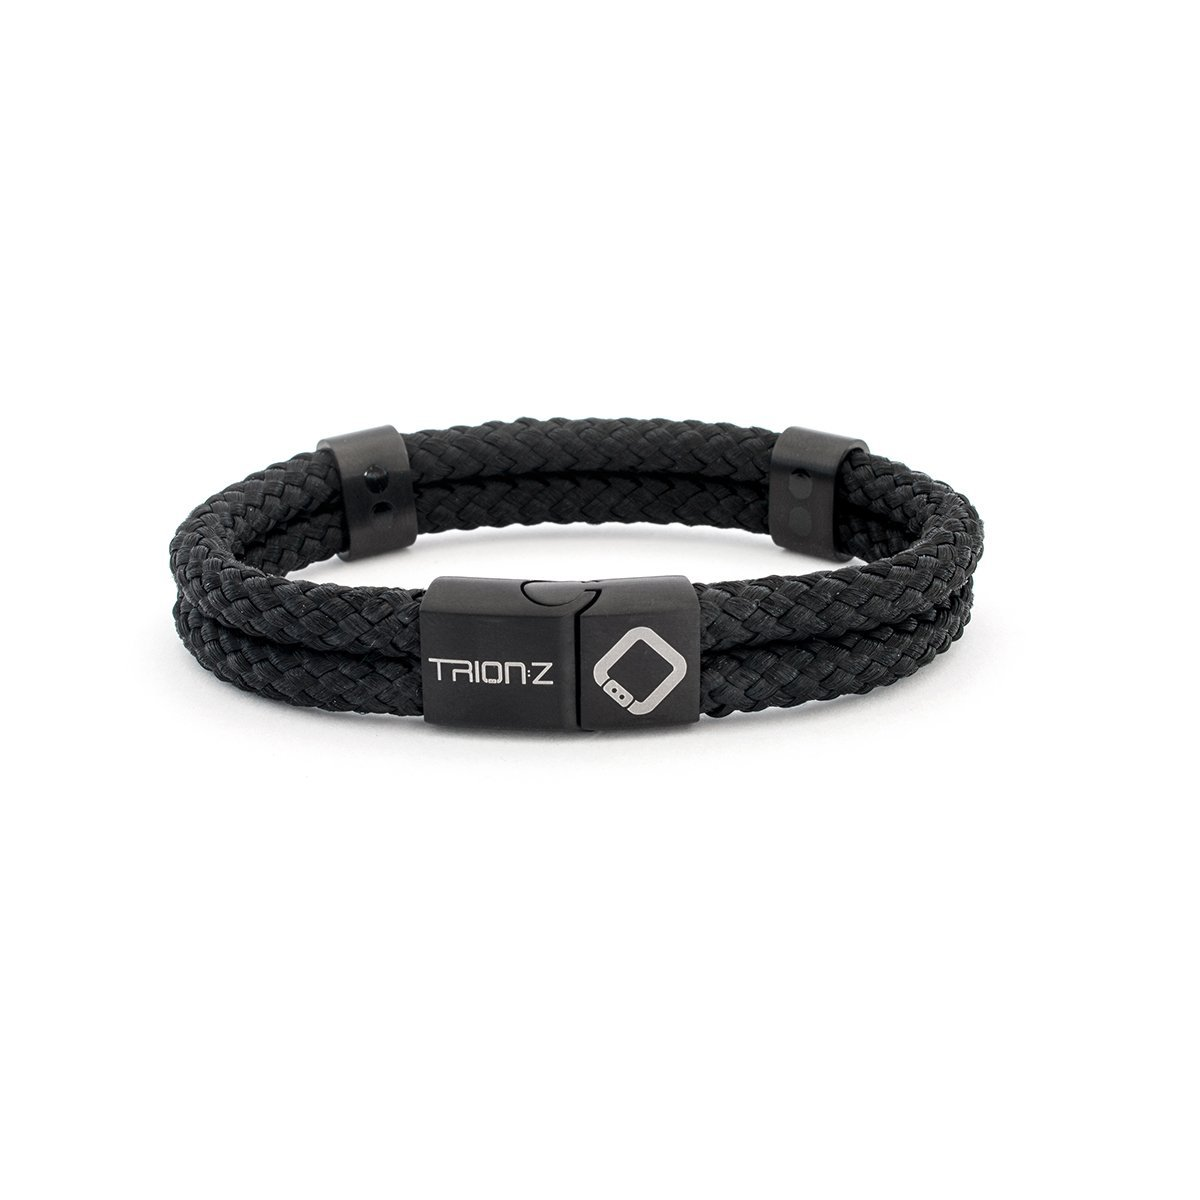 Magnetic Therapy Wristband from Trion:Z - Zen Loop Duo (Medium, Black) by Trion Z